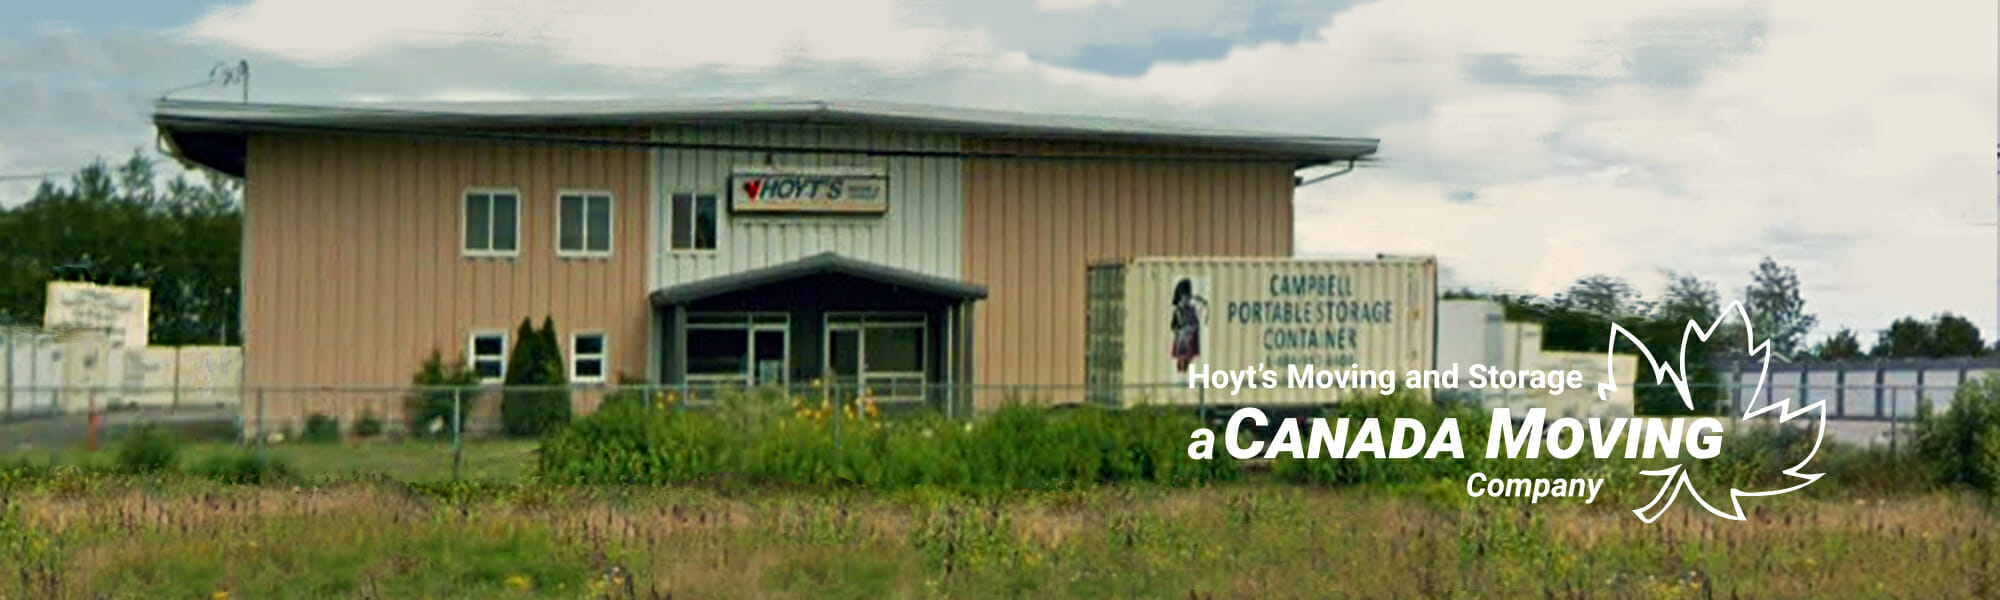 hoyt's canada-moving-fredericton